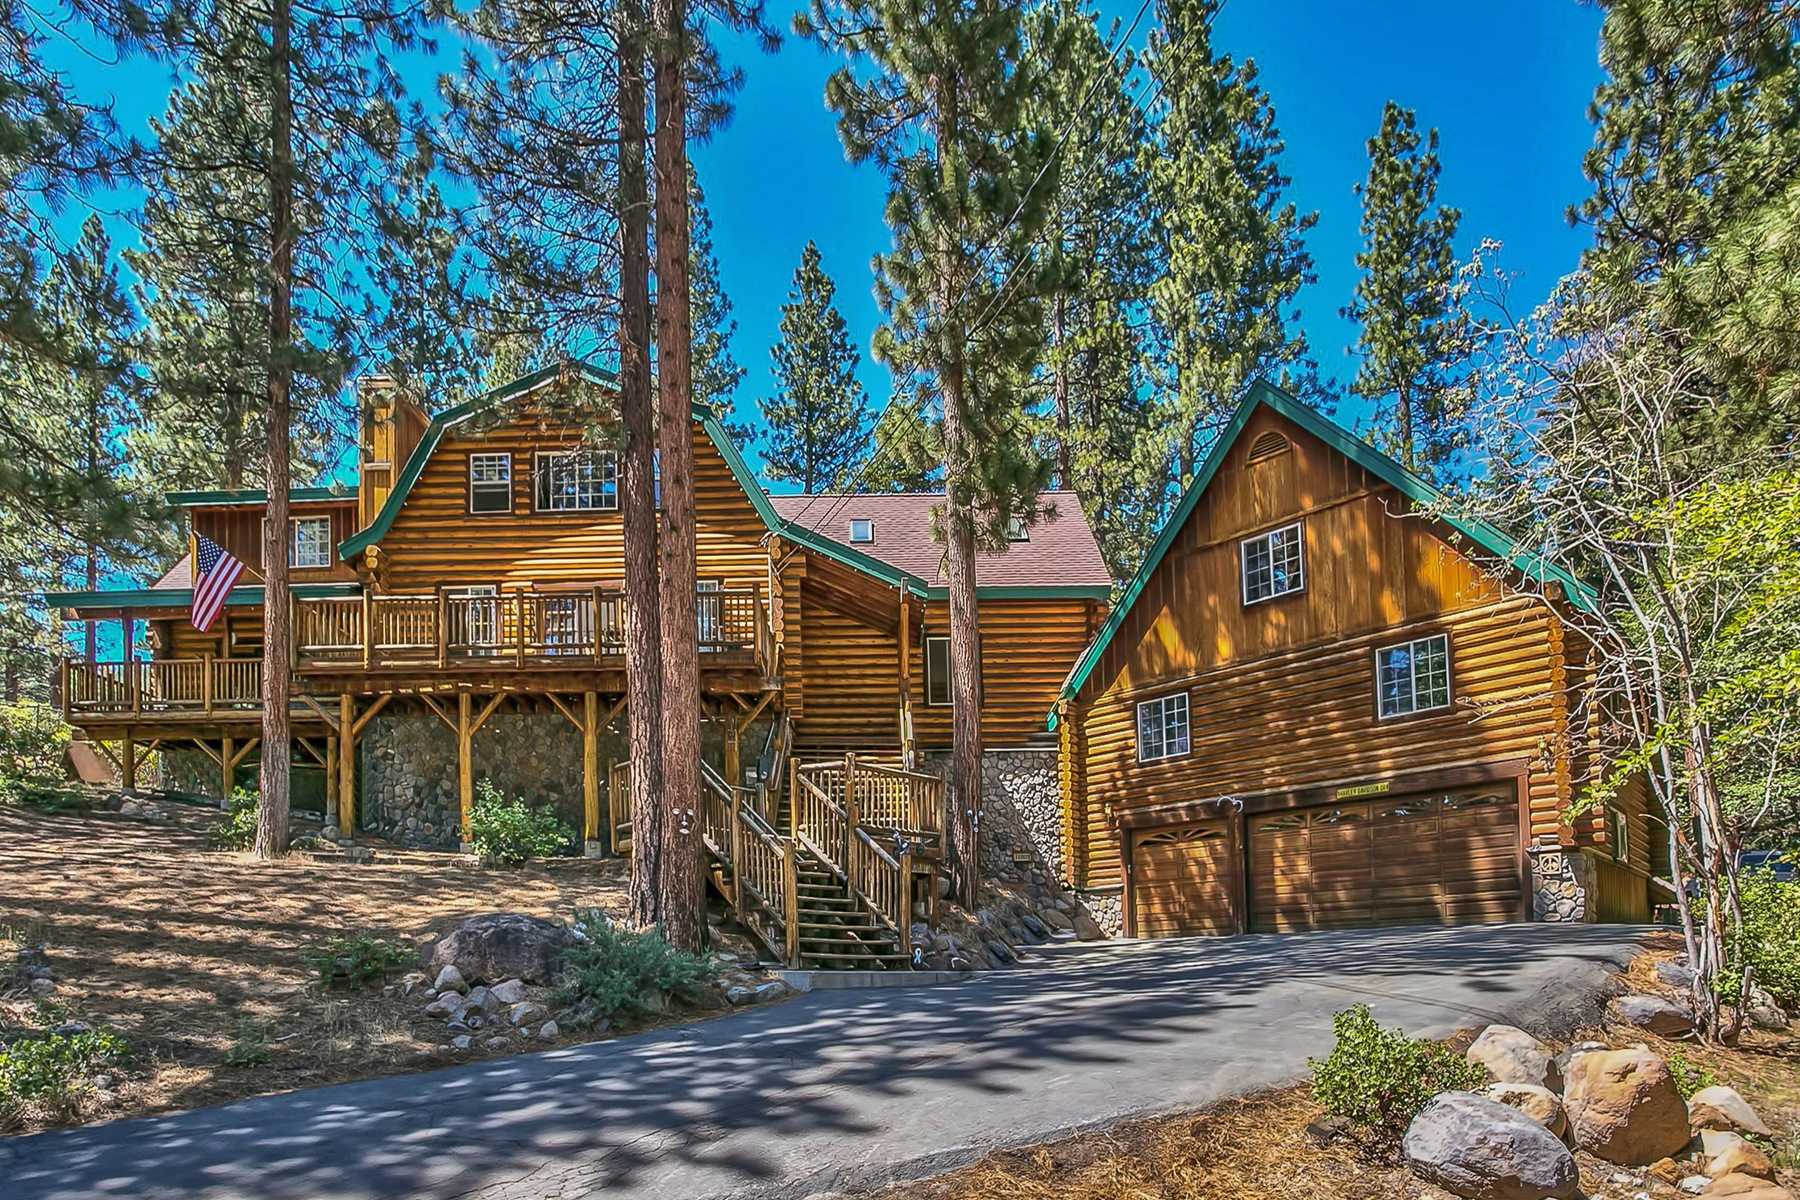 Maison unifamiliale pour l Vente à 428 Pat Court Incline Village, Nevada, 89451 Lake Tahoe, États-Unis